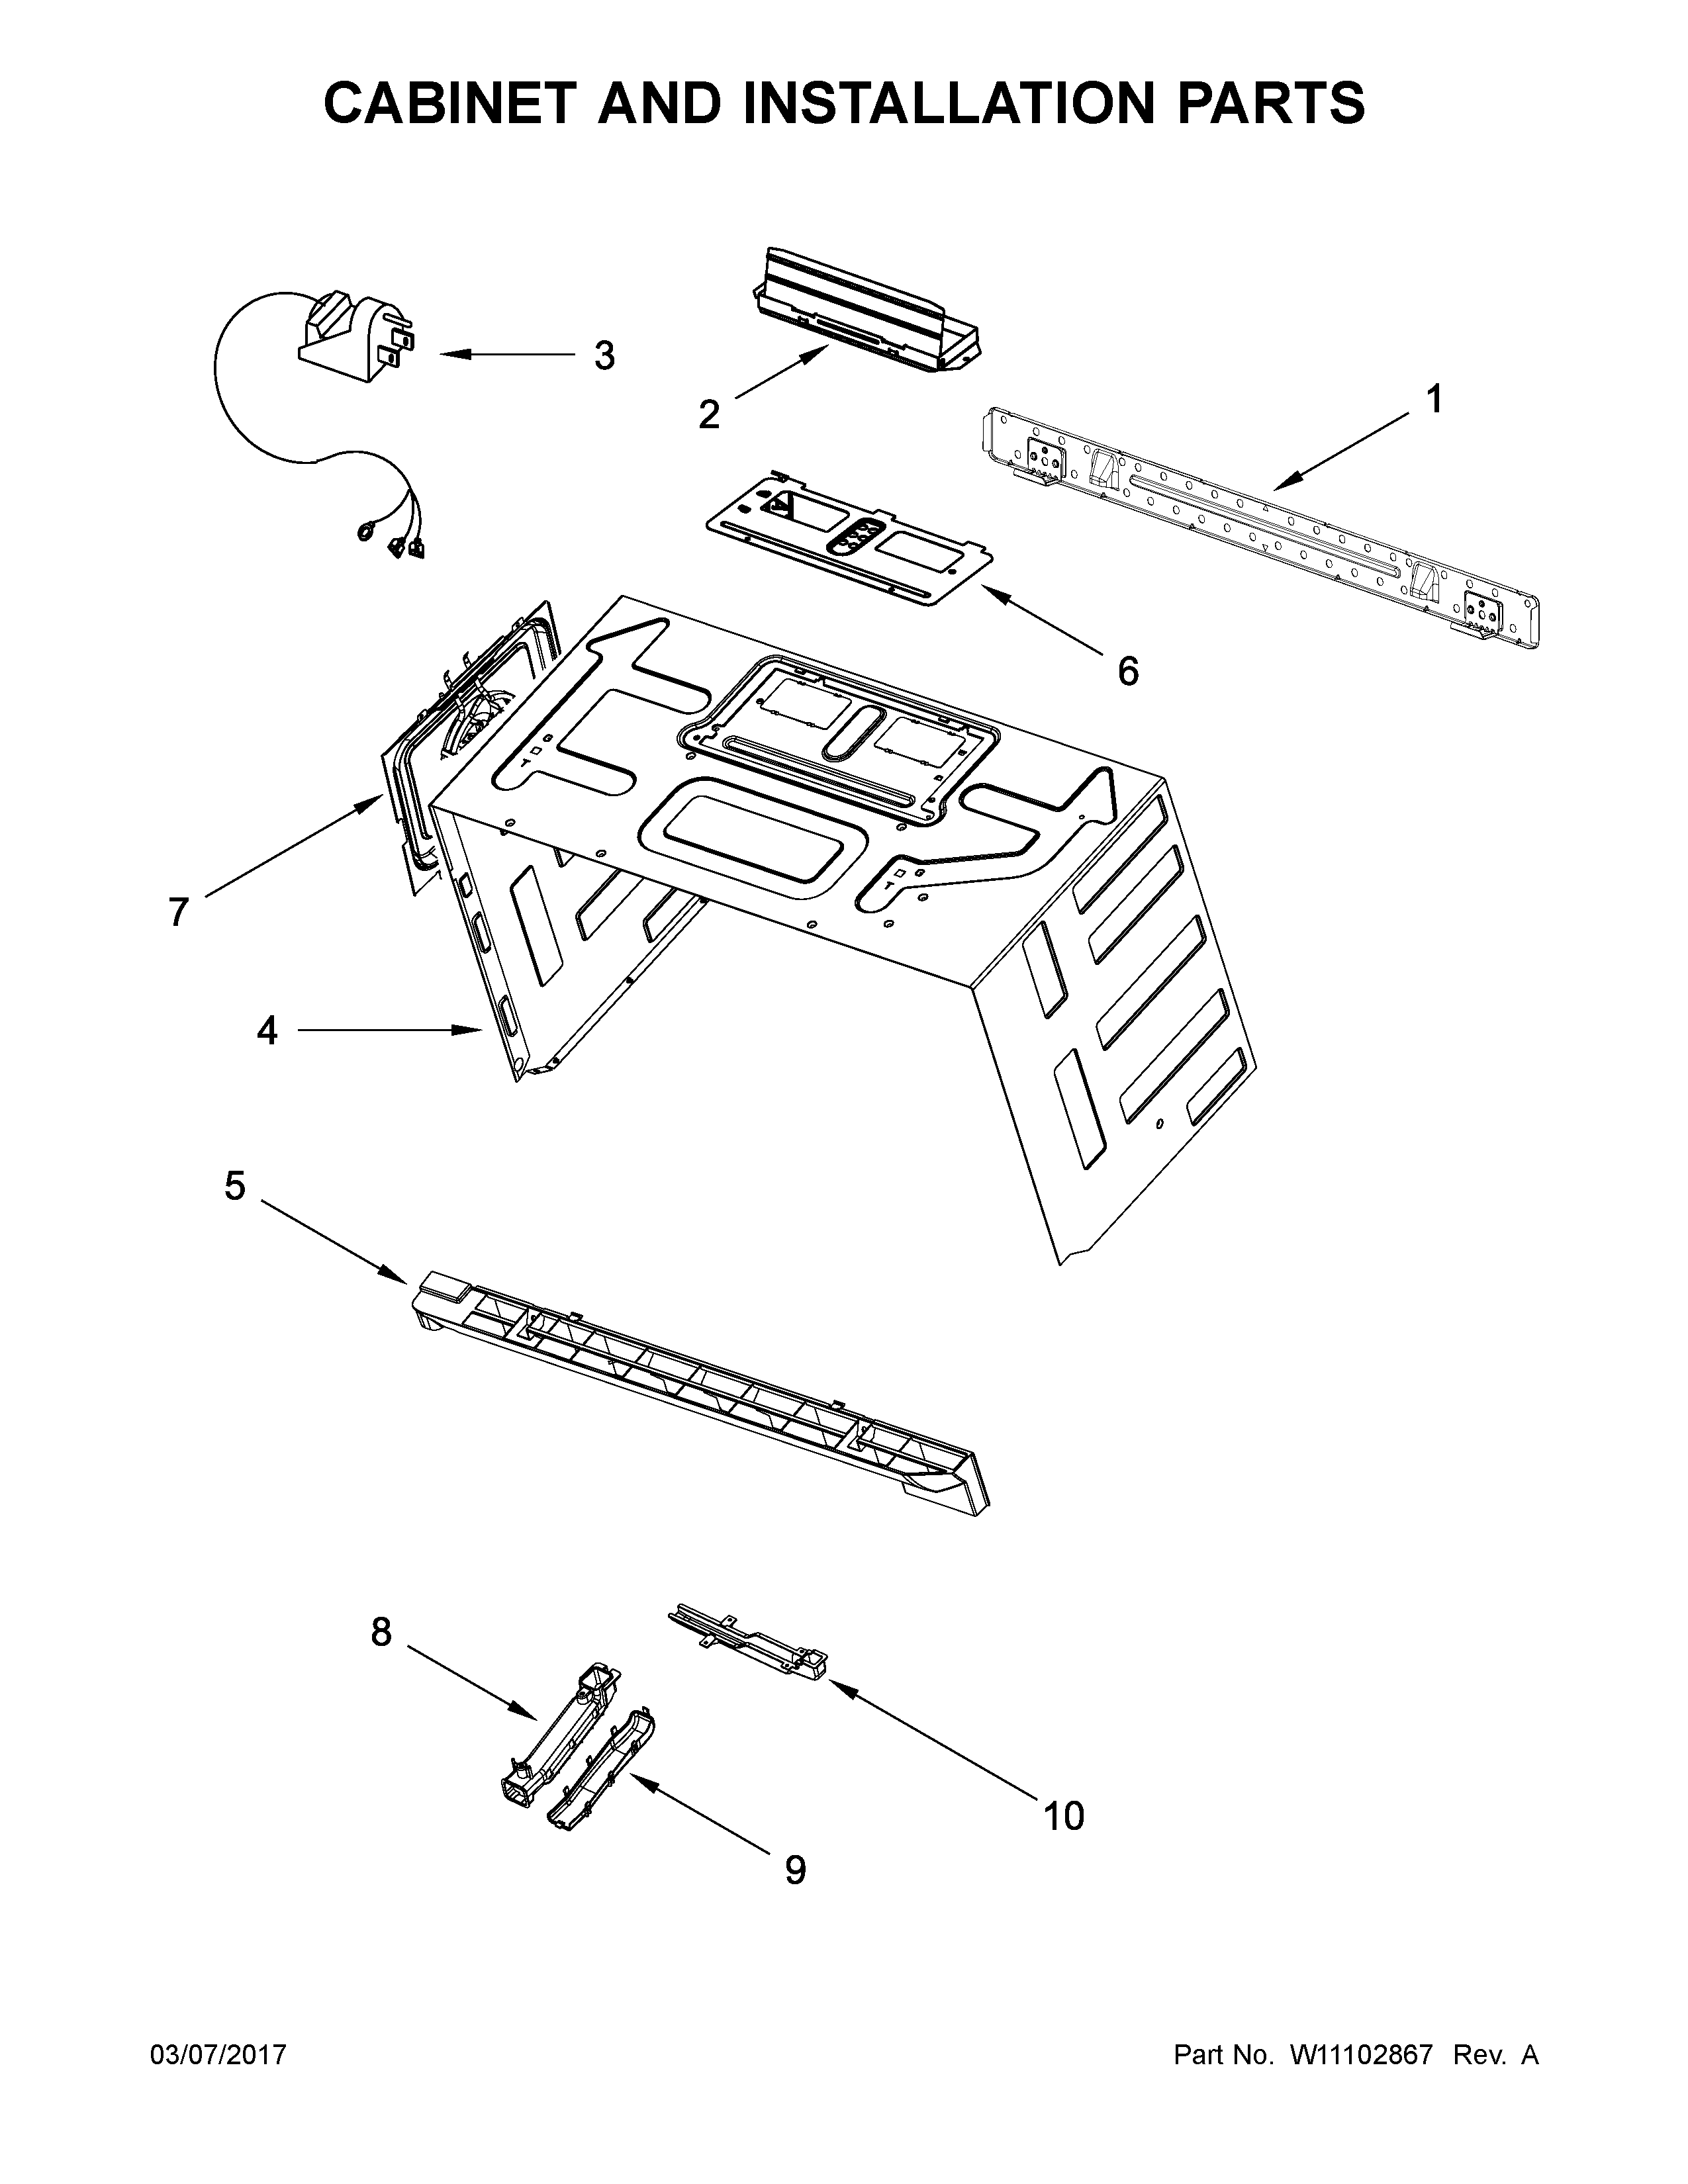 Whirlpool WMH76719CS3 cabinet and installation parts diagram